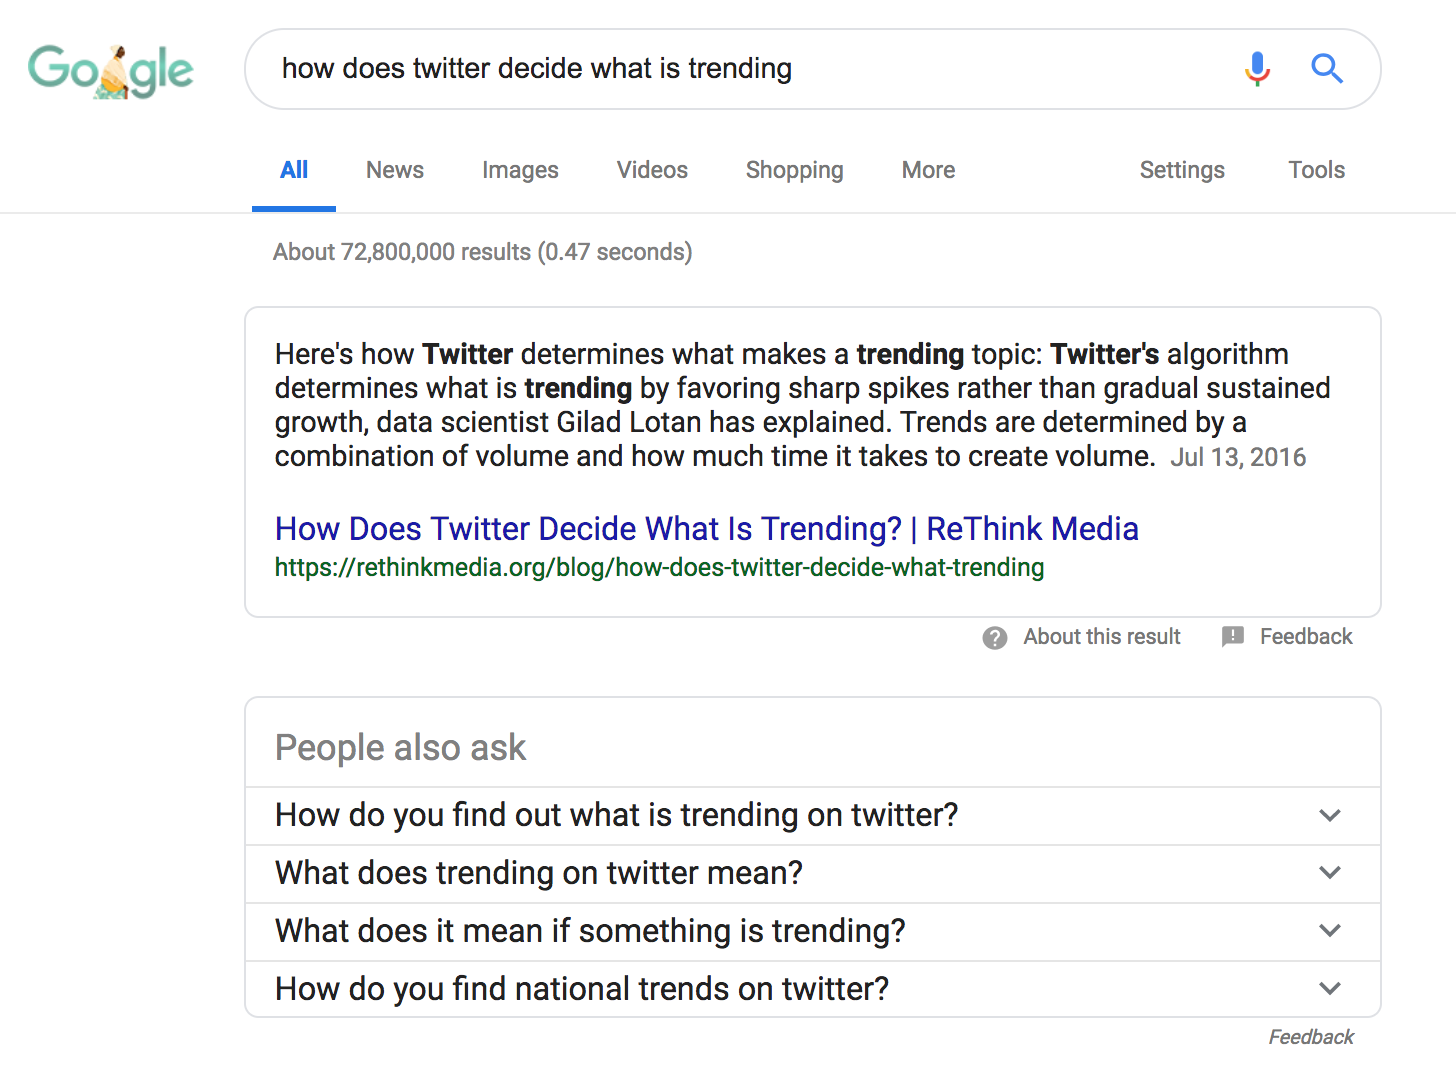 Google-how-does-twitter-decide-whats-trending